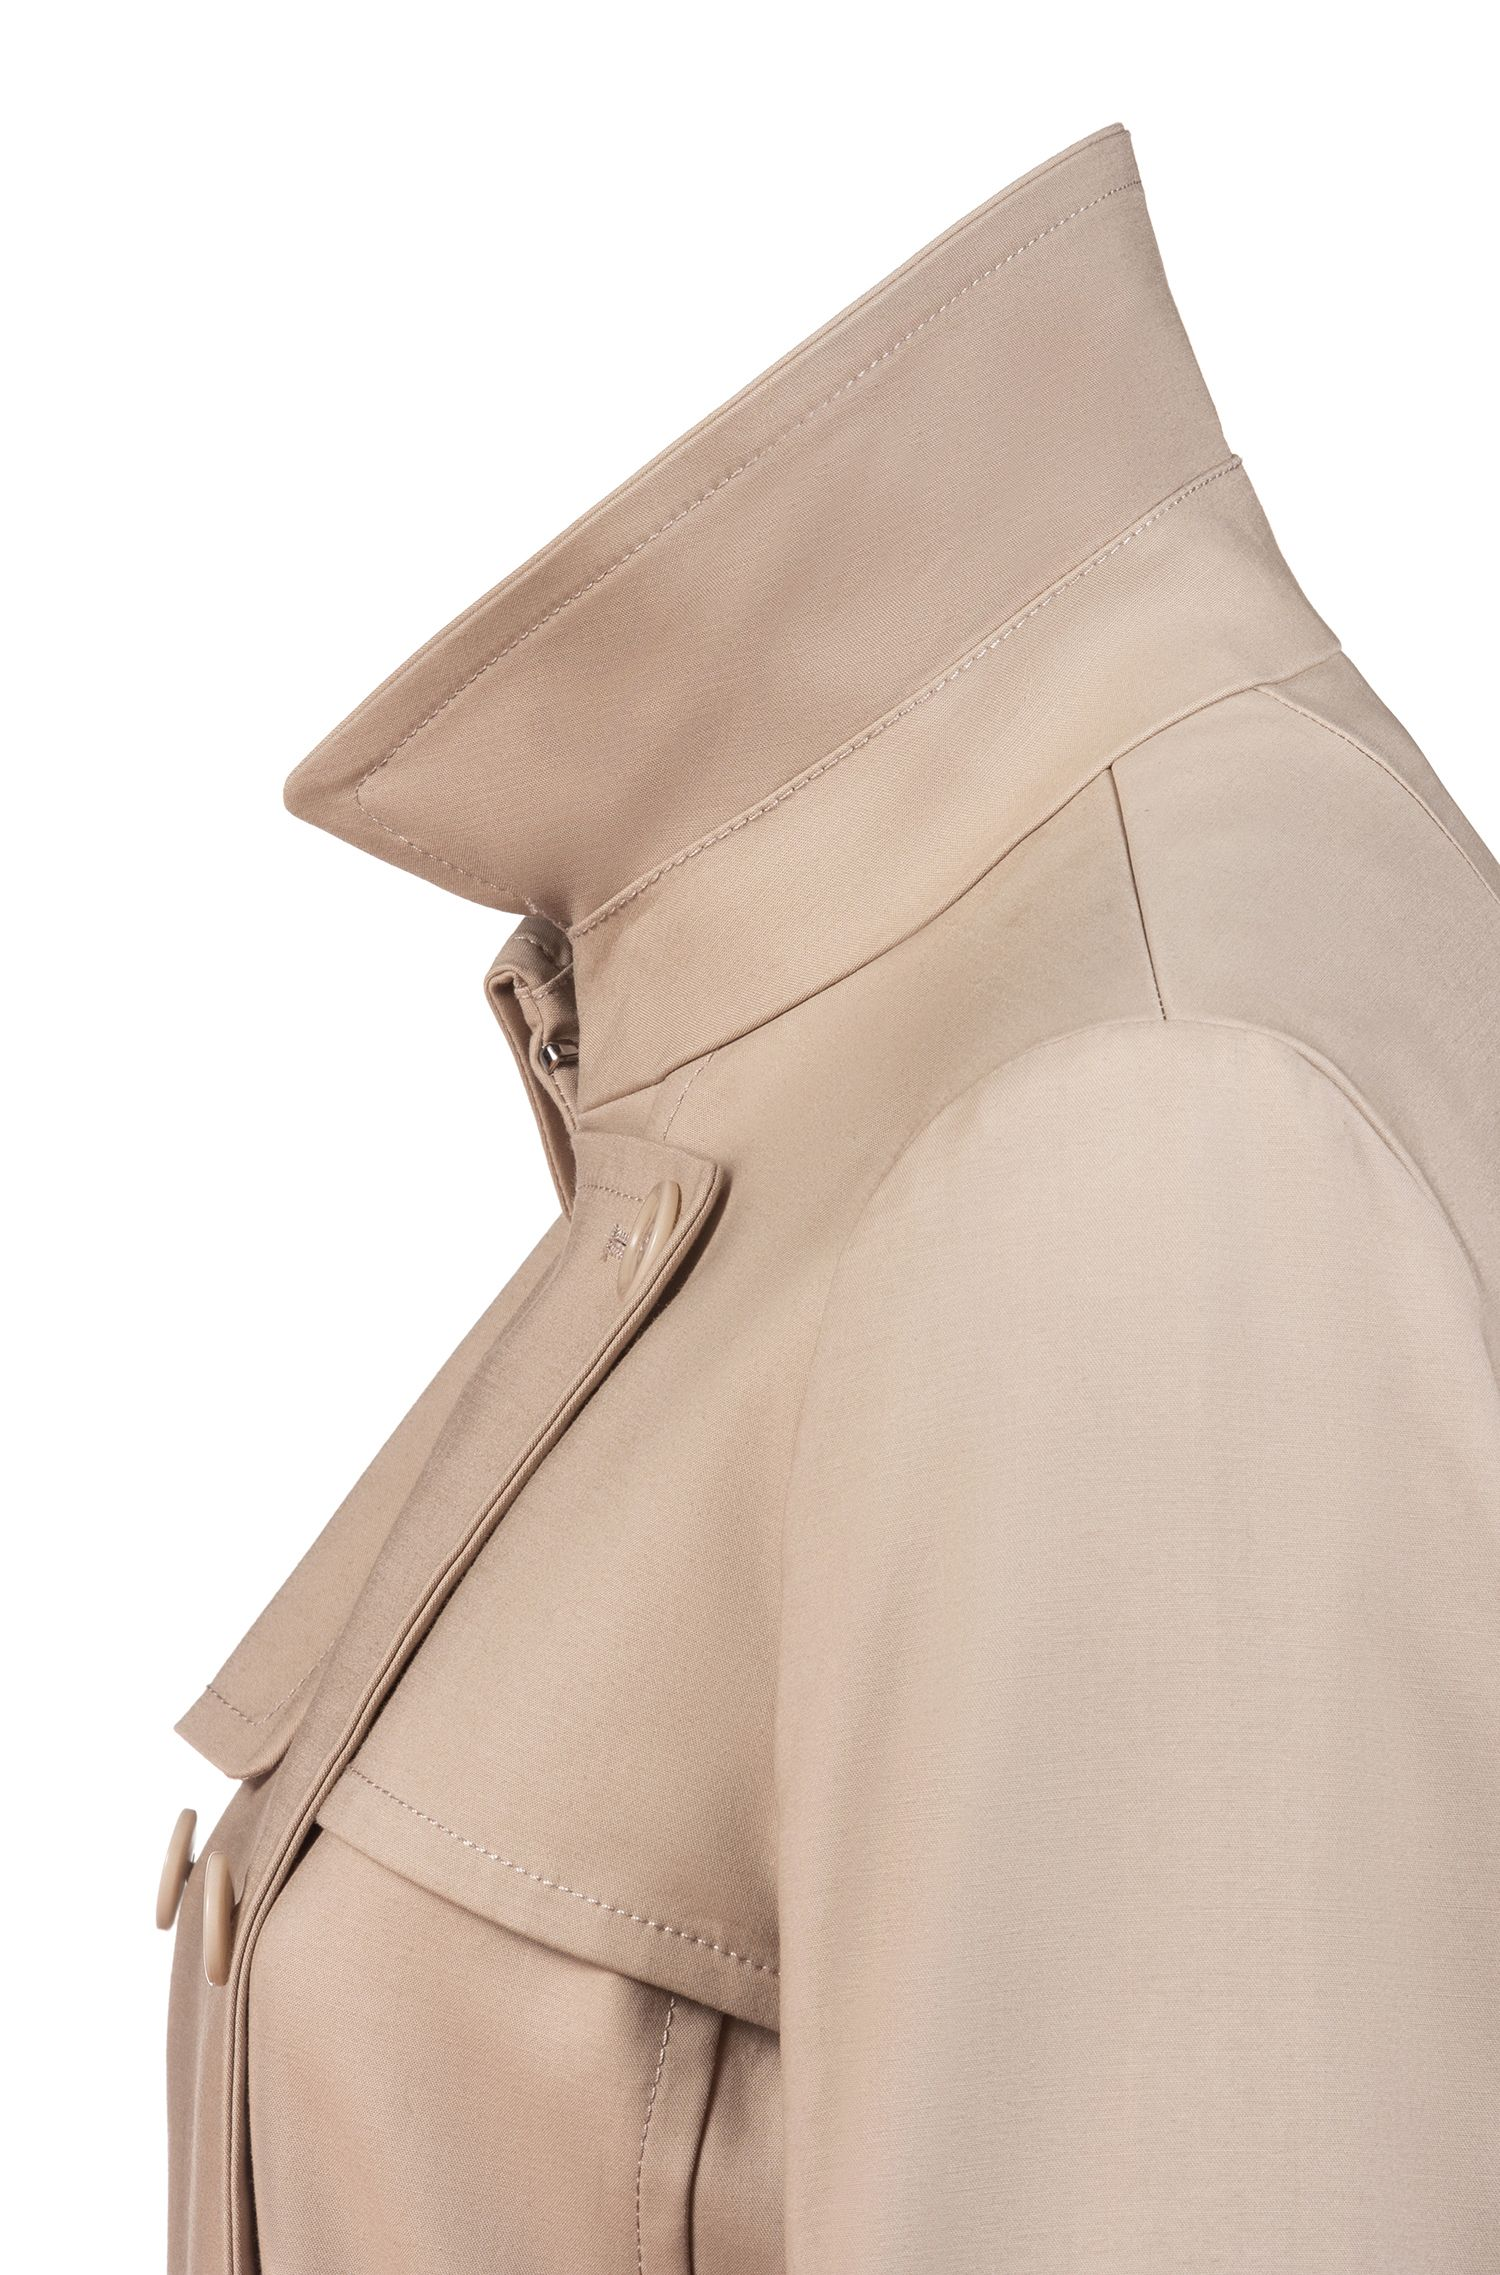 Zweireihiger Regular-Fit Trenchcoat aus Stretch-Baumwolle, Beige